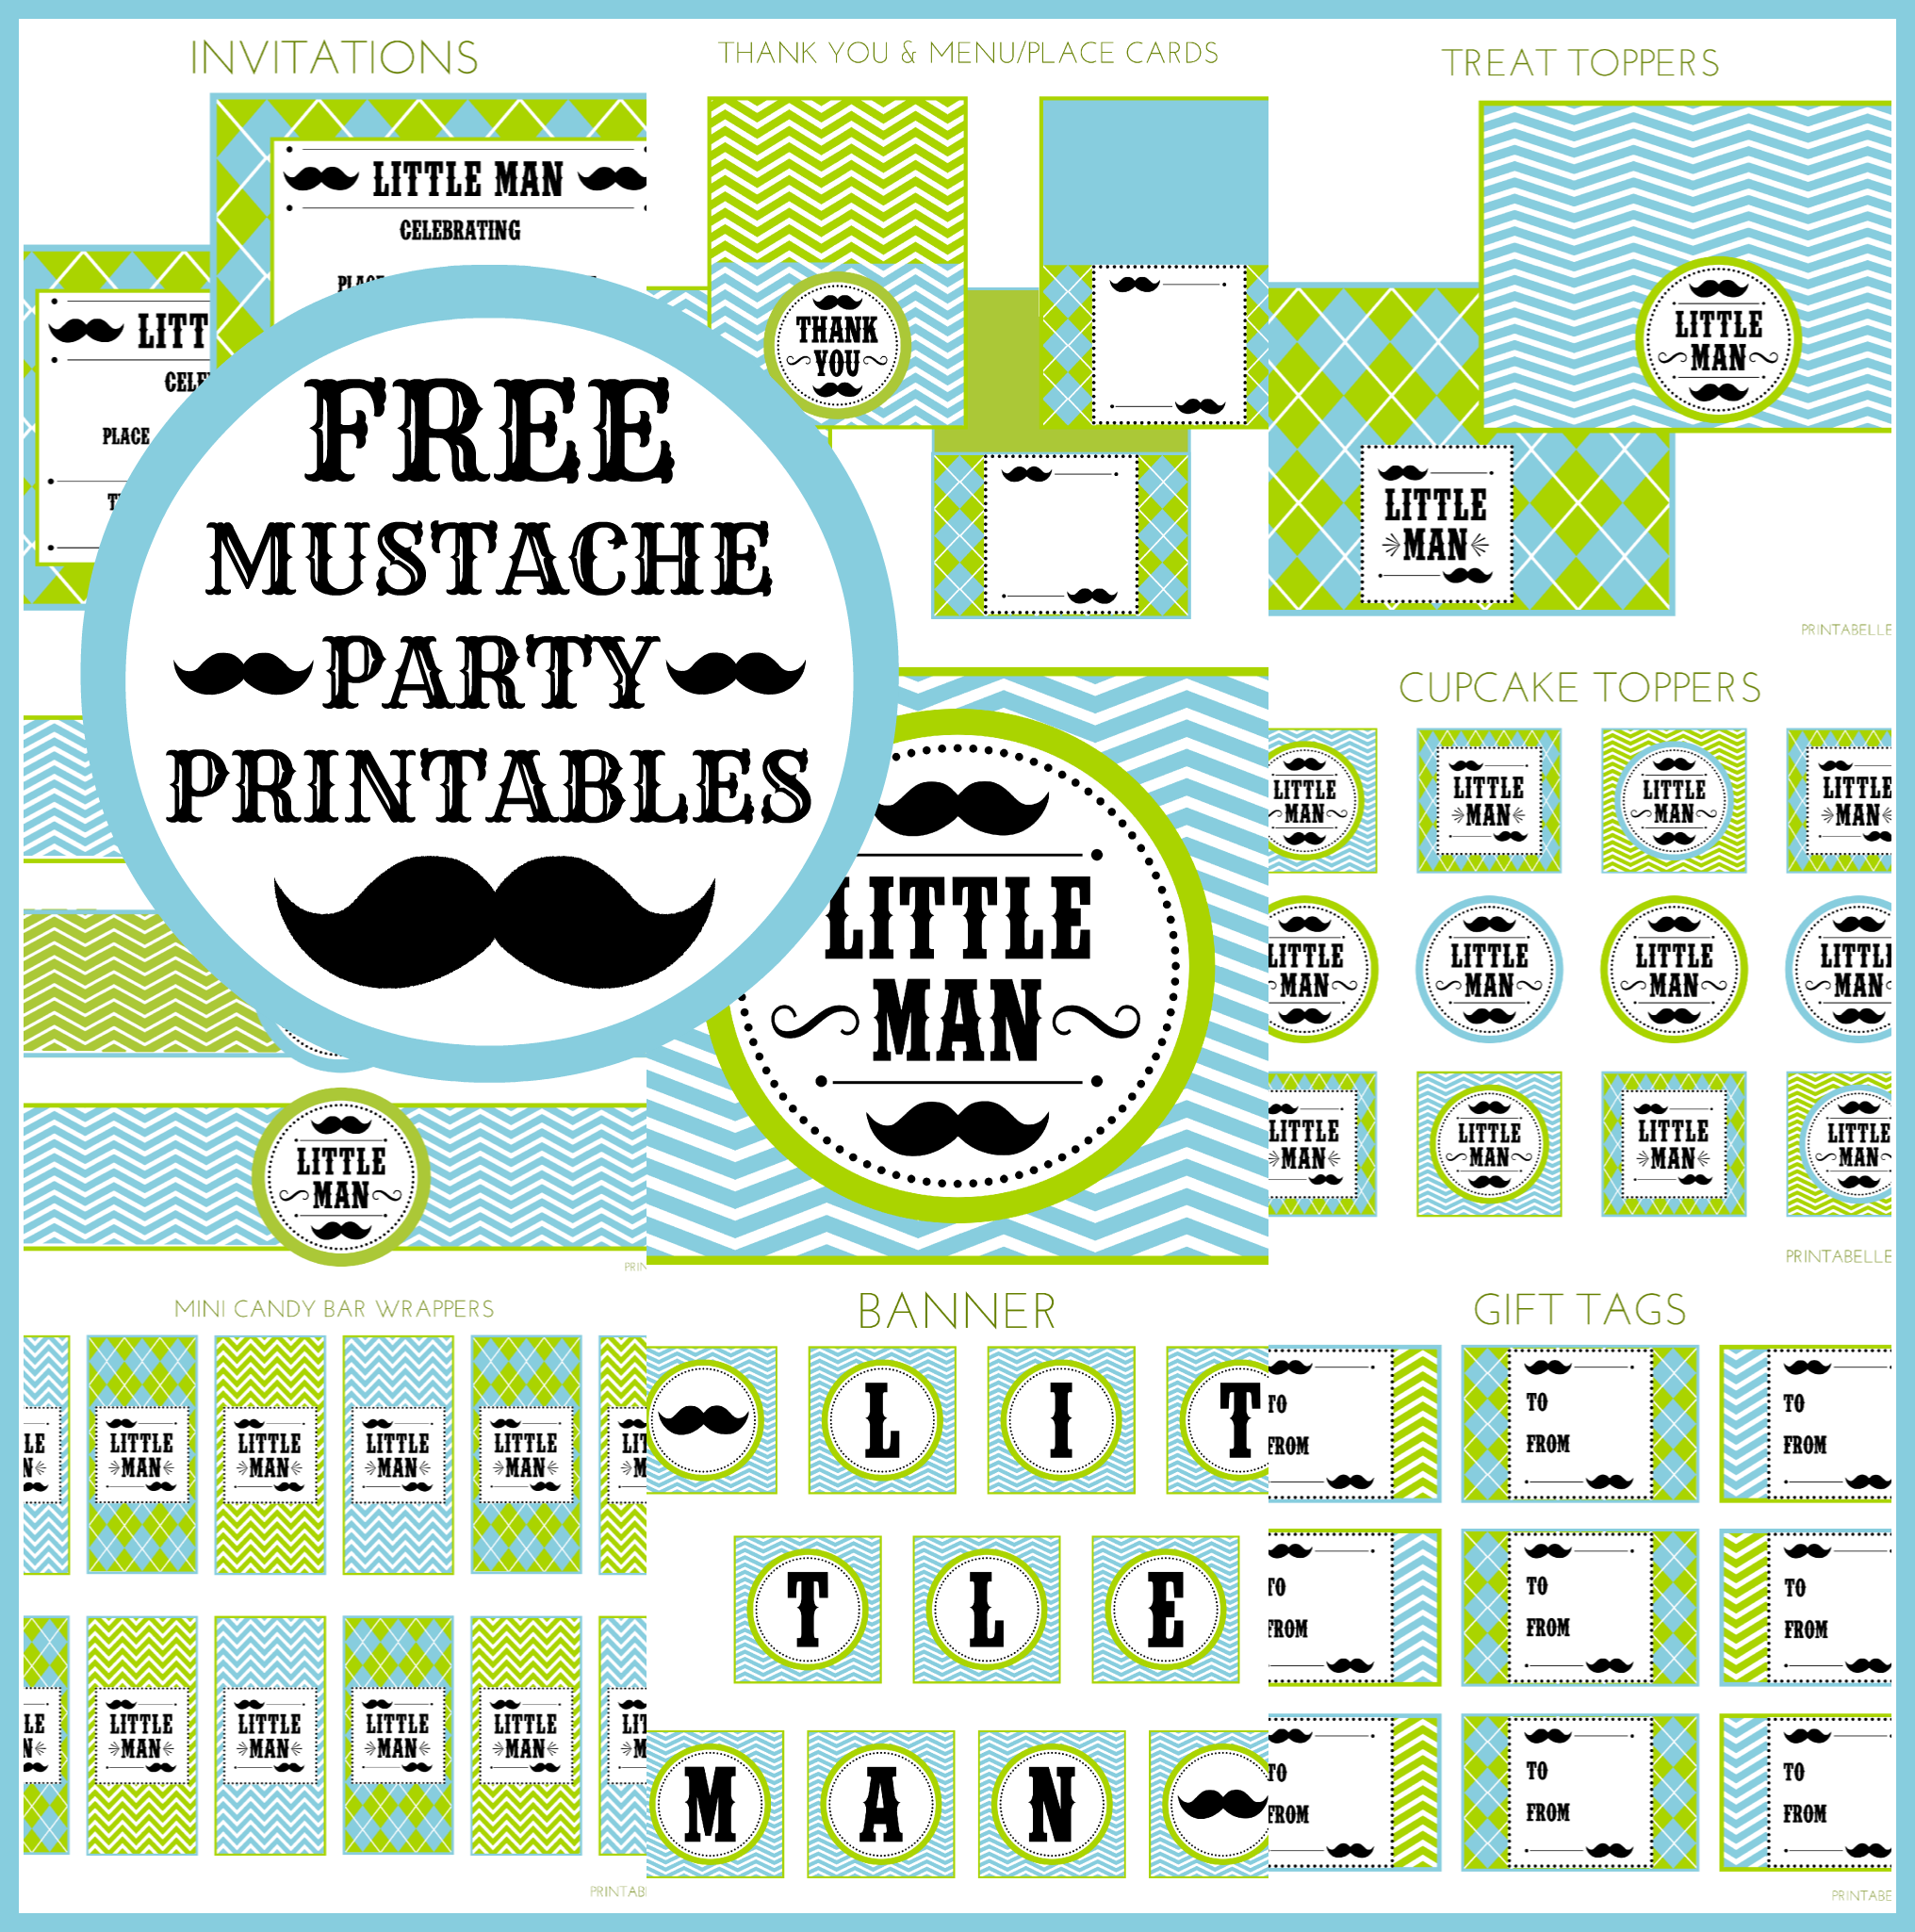 image regarding Free Mustache Printable titled Free of charge Minor Guy Mustache Occasion Social gathering Printables towards